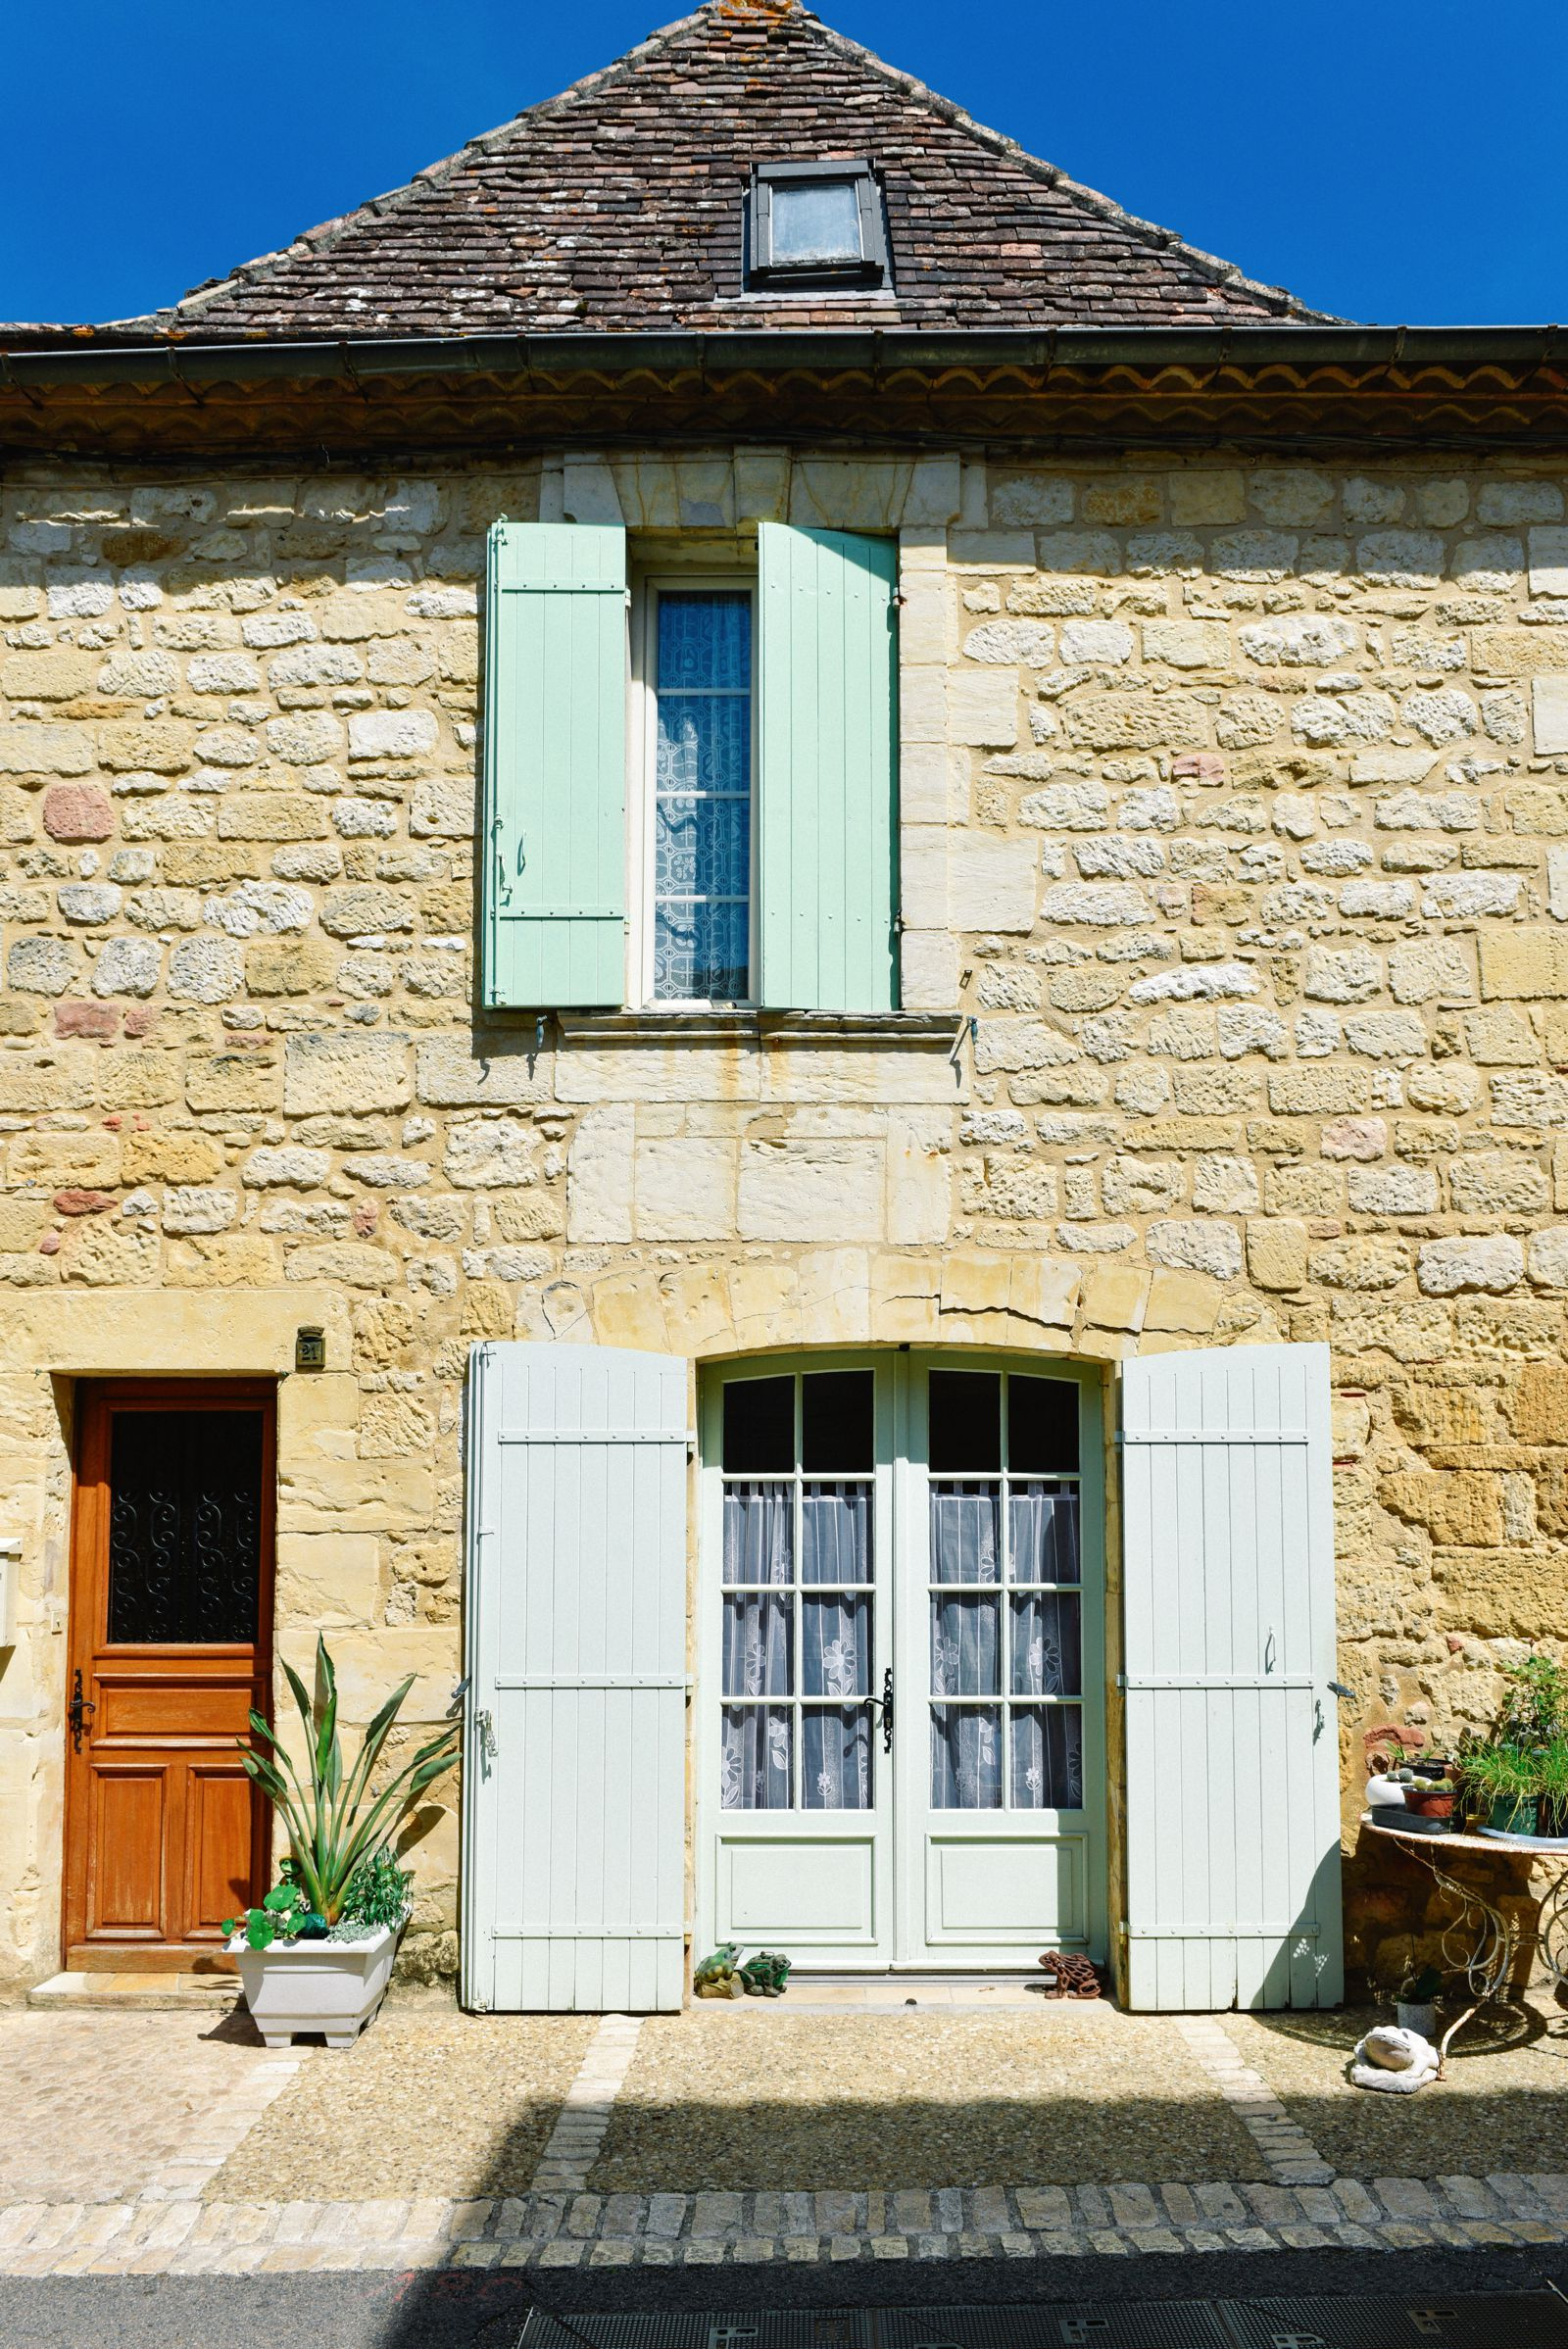 Mornings In The French City Of Sarlat And Afternoons In The Village Of Beaumont-du-Périgord... (55)